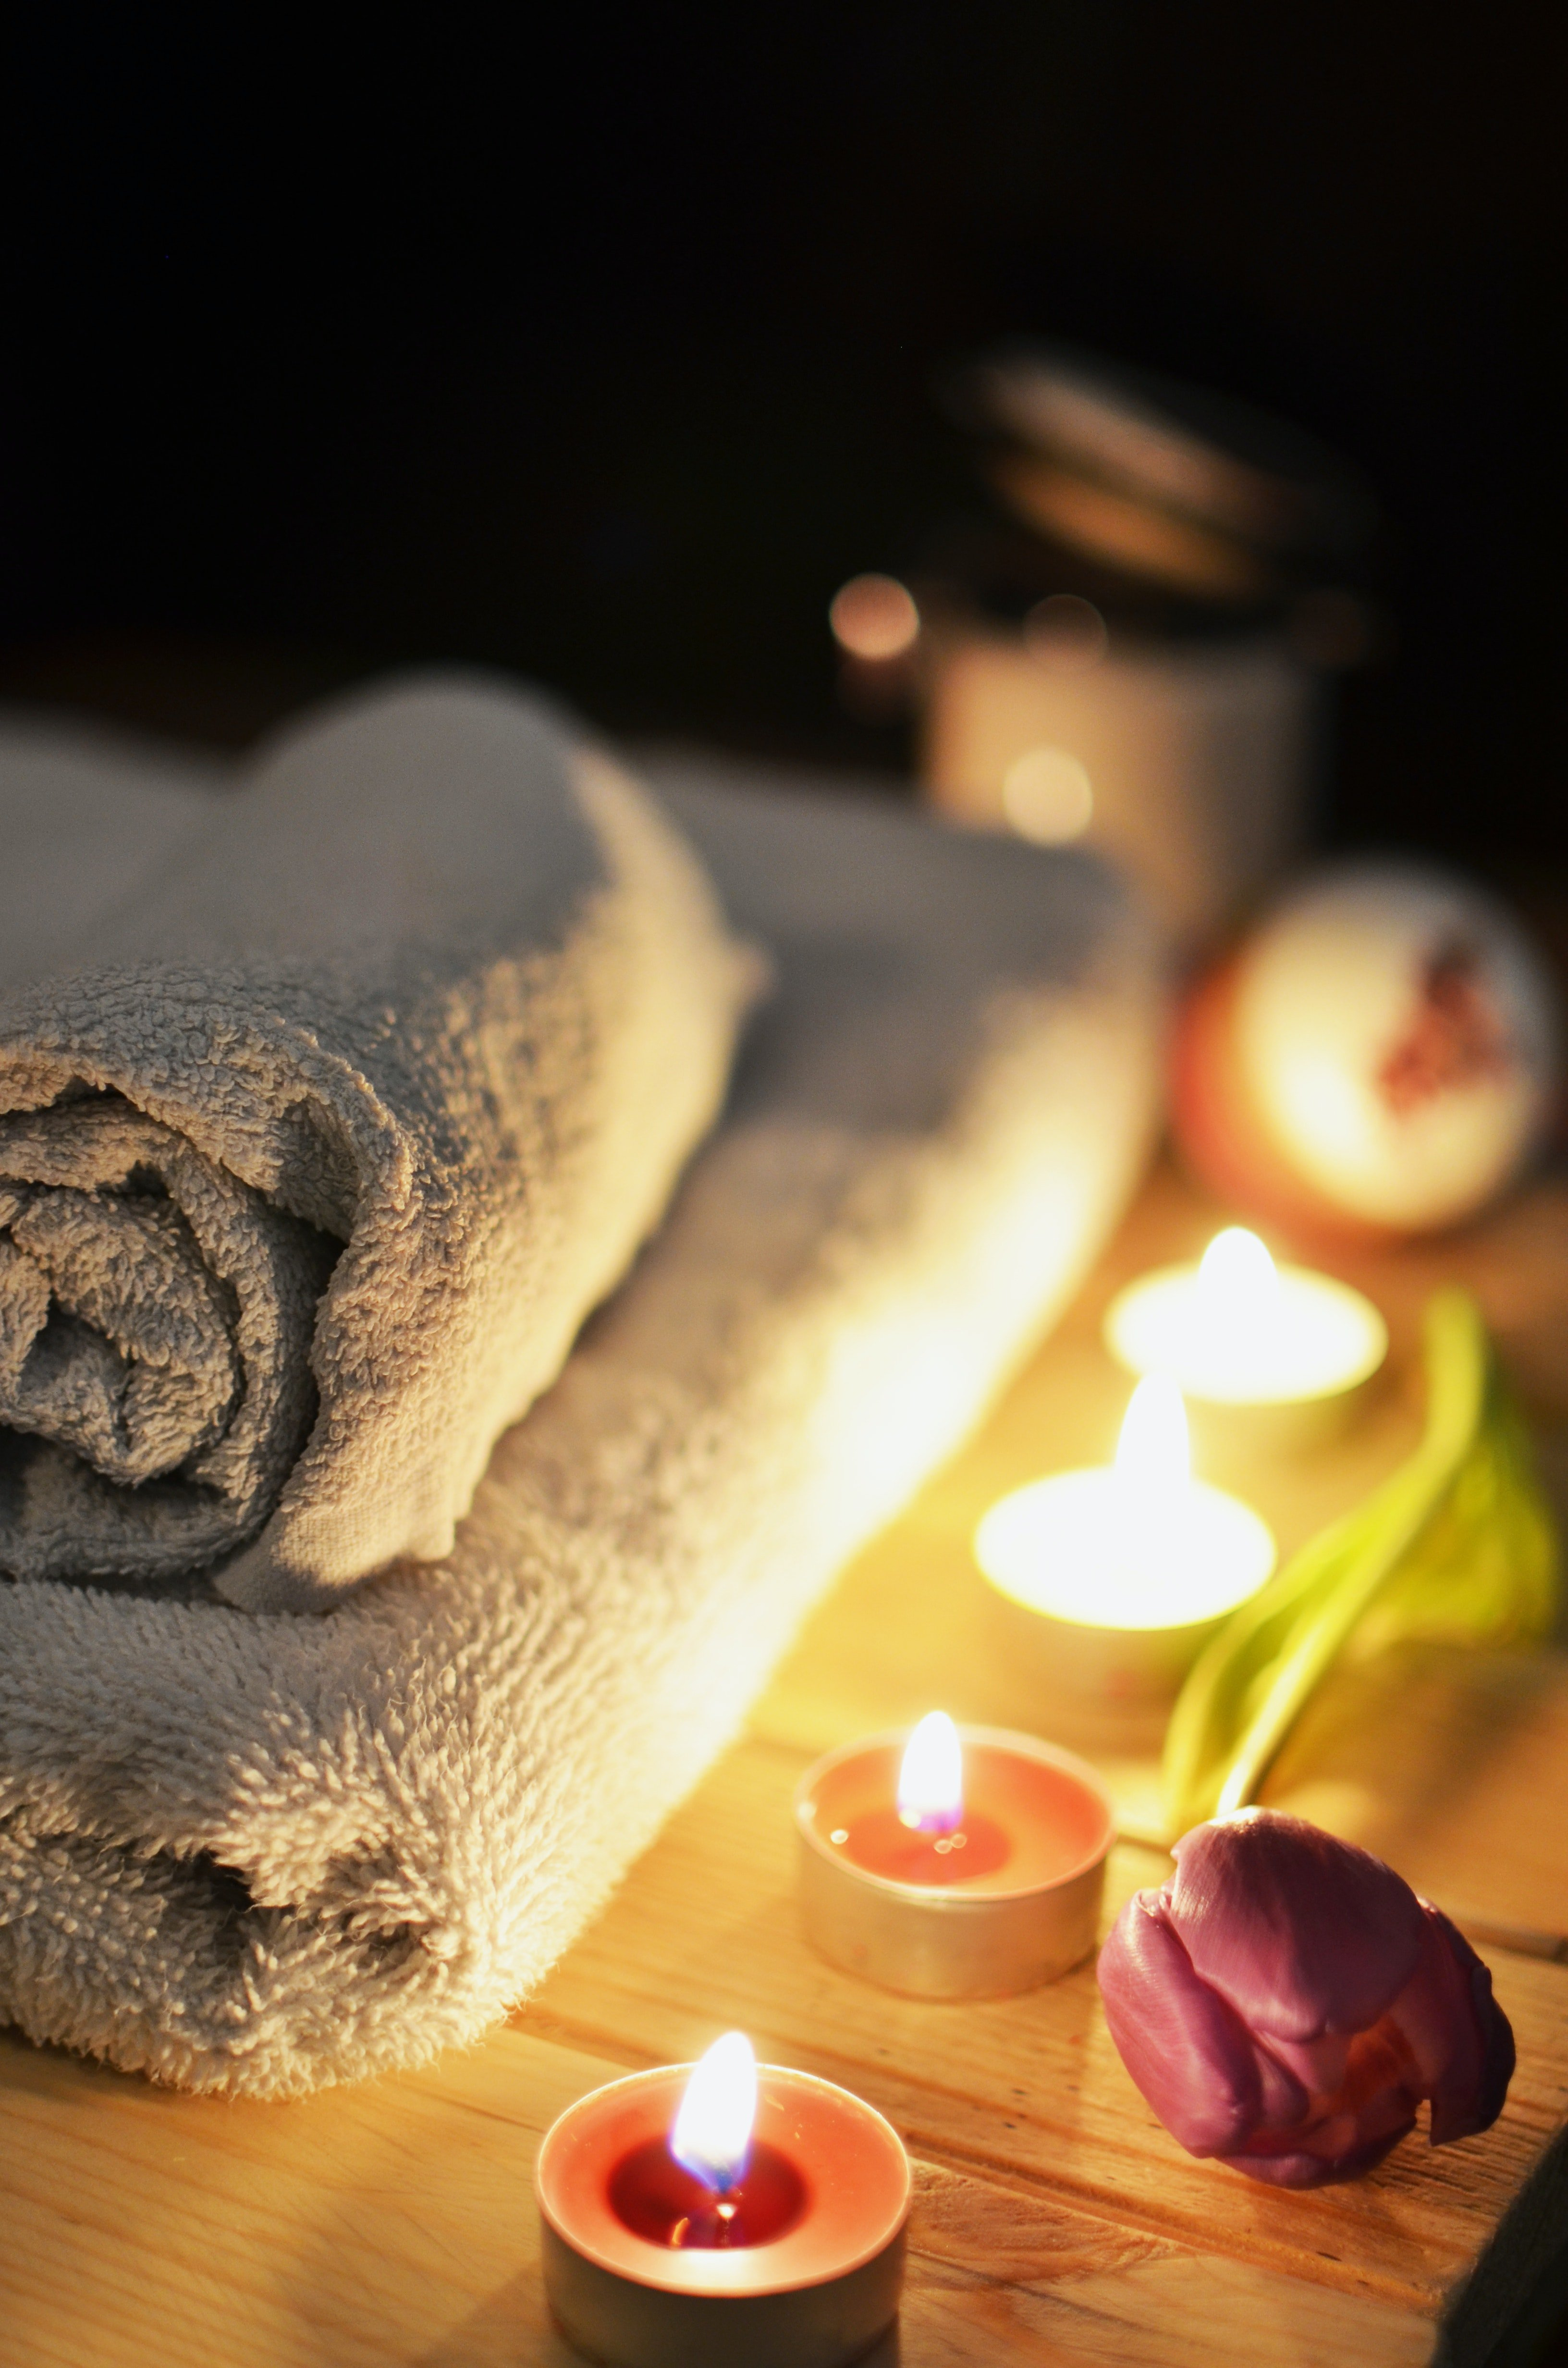 Towels and candles in a sauna | Photo: Pexels